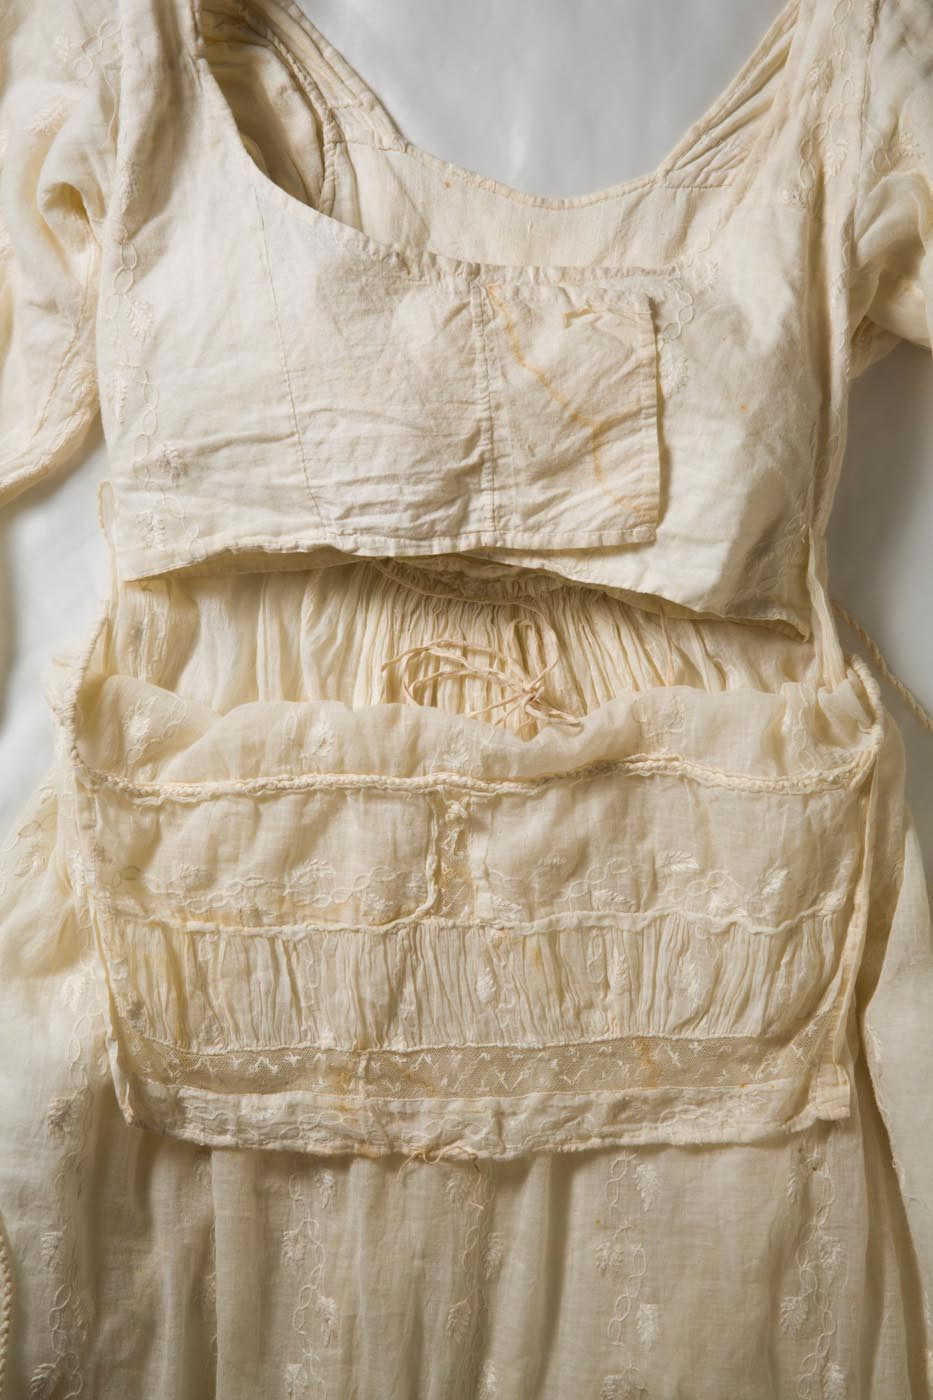 The front of the bodice fastened by two lining extensions that were crossed over the chest. - click to view larger image